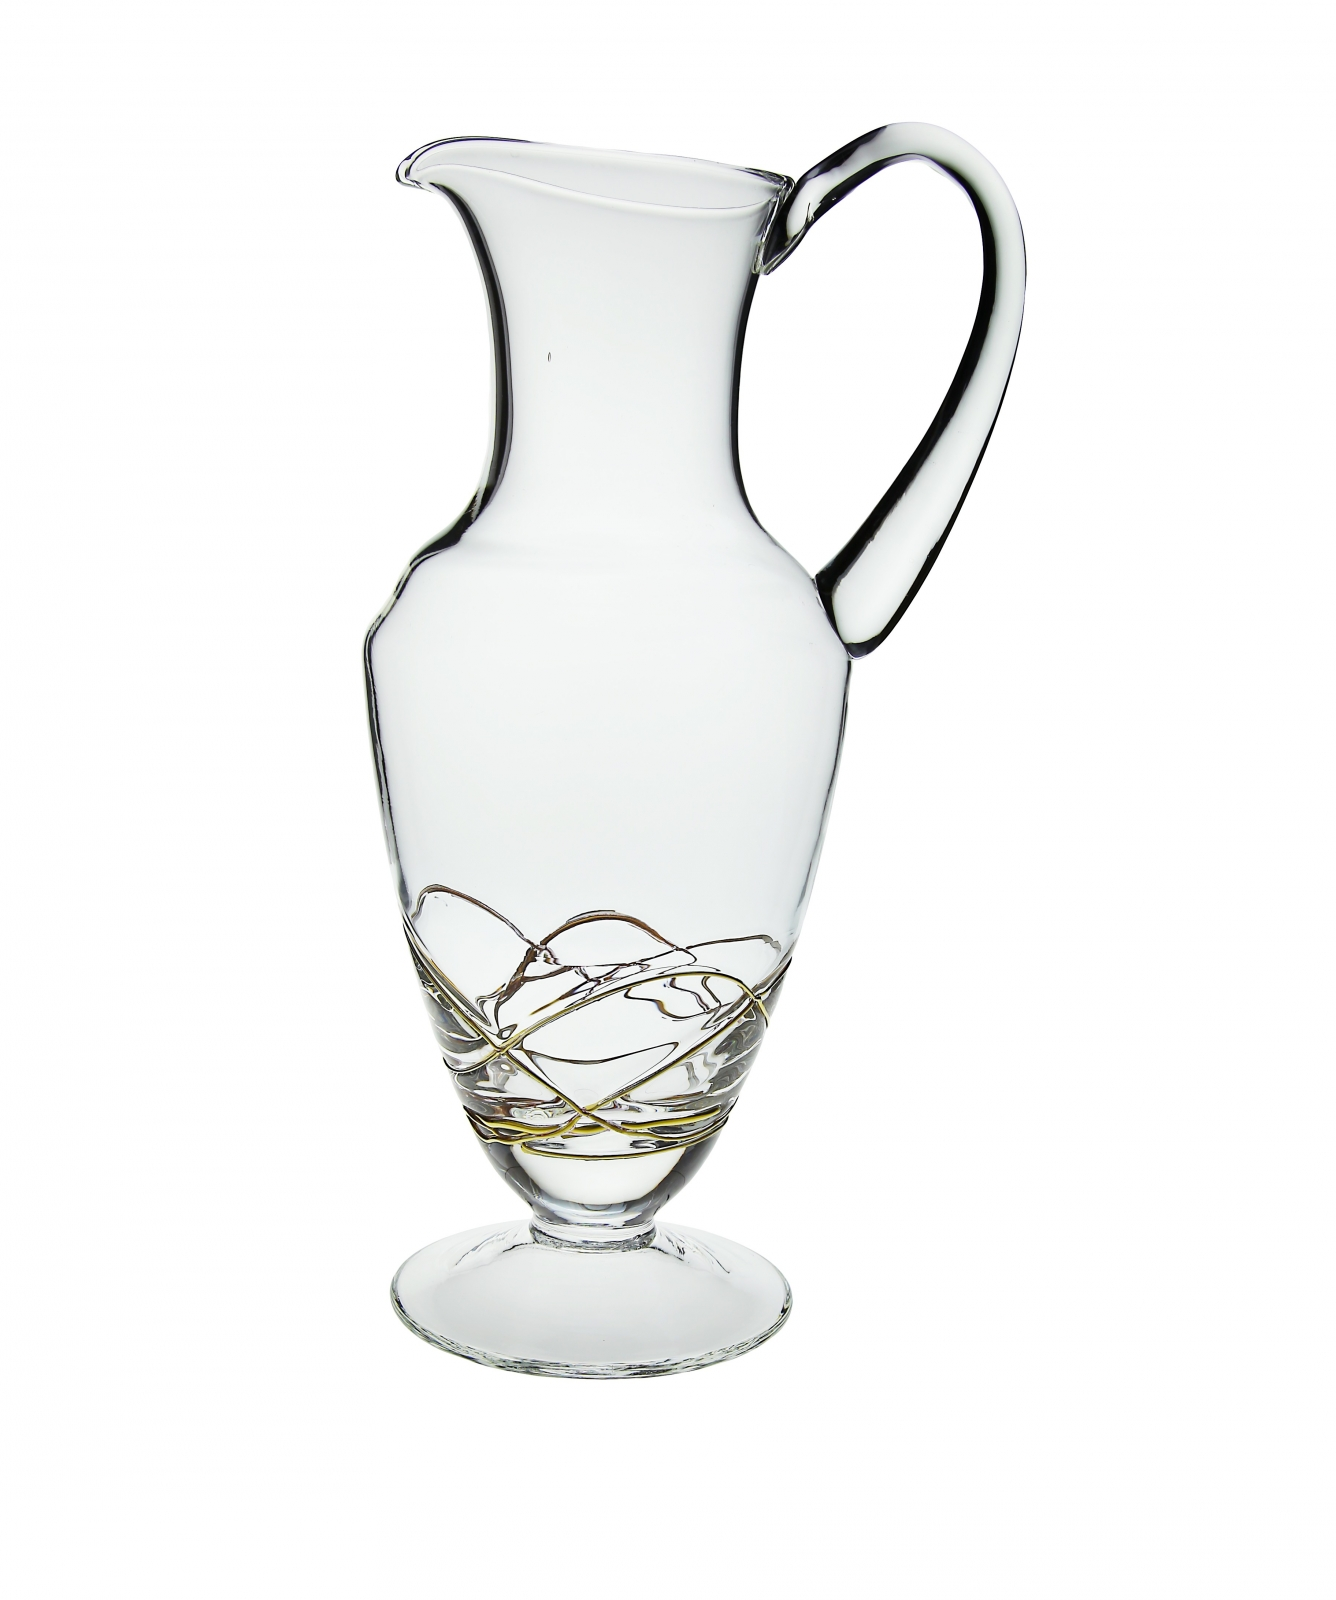 Pitcher with Gold Swirl Design